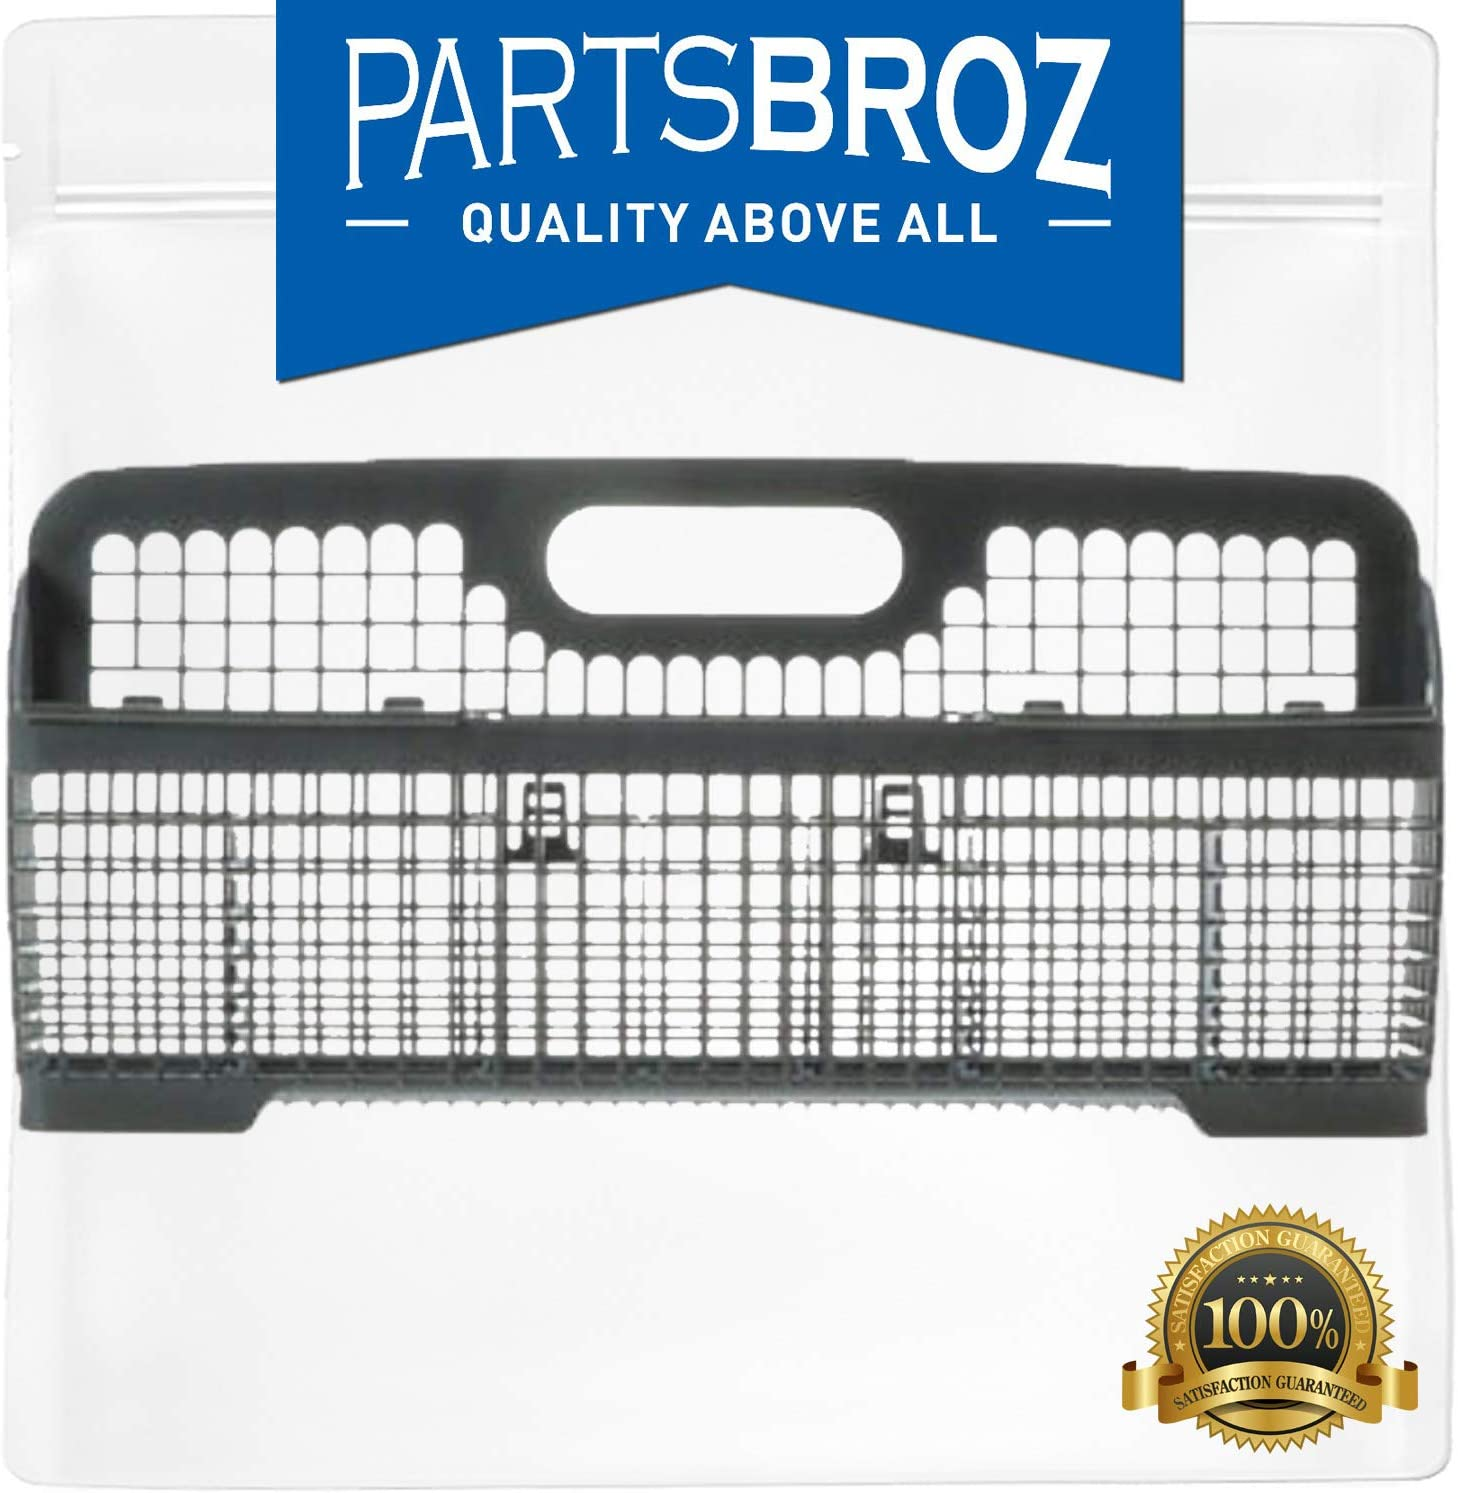 WP8531233 Silverware Basket by PartsBroz - Compatible with Whirlpool Dishwashers - Replaces AP6012898, 8531233, PS11746119, WP8531233VP